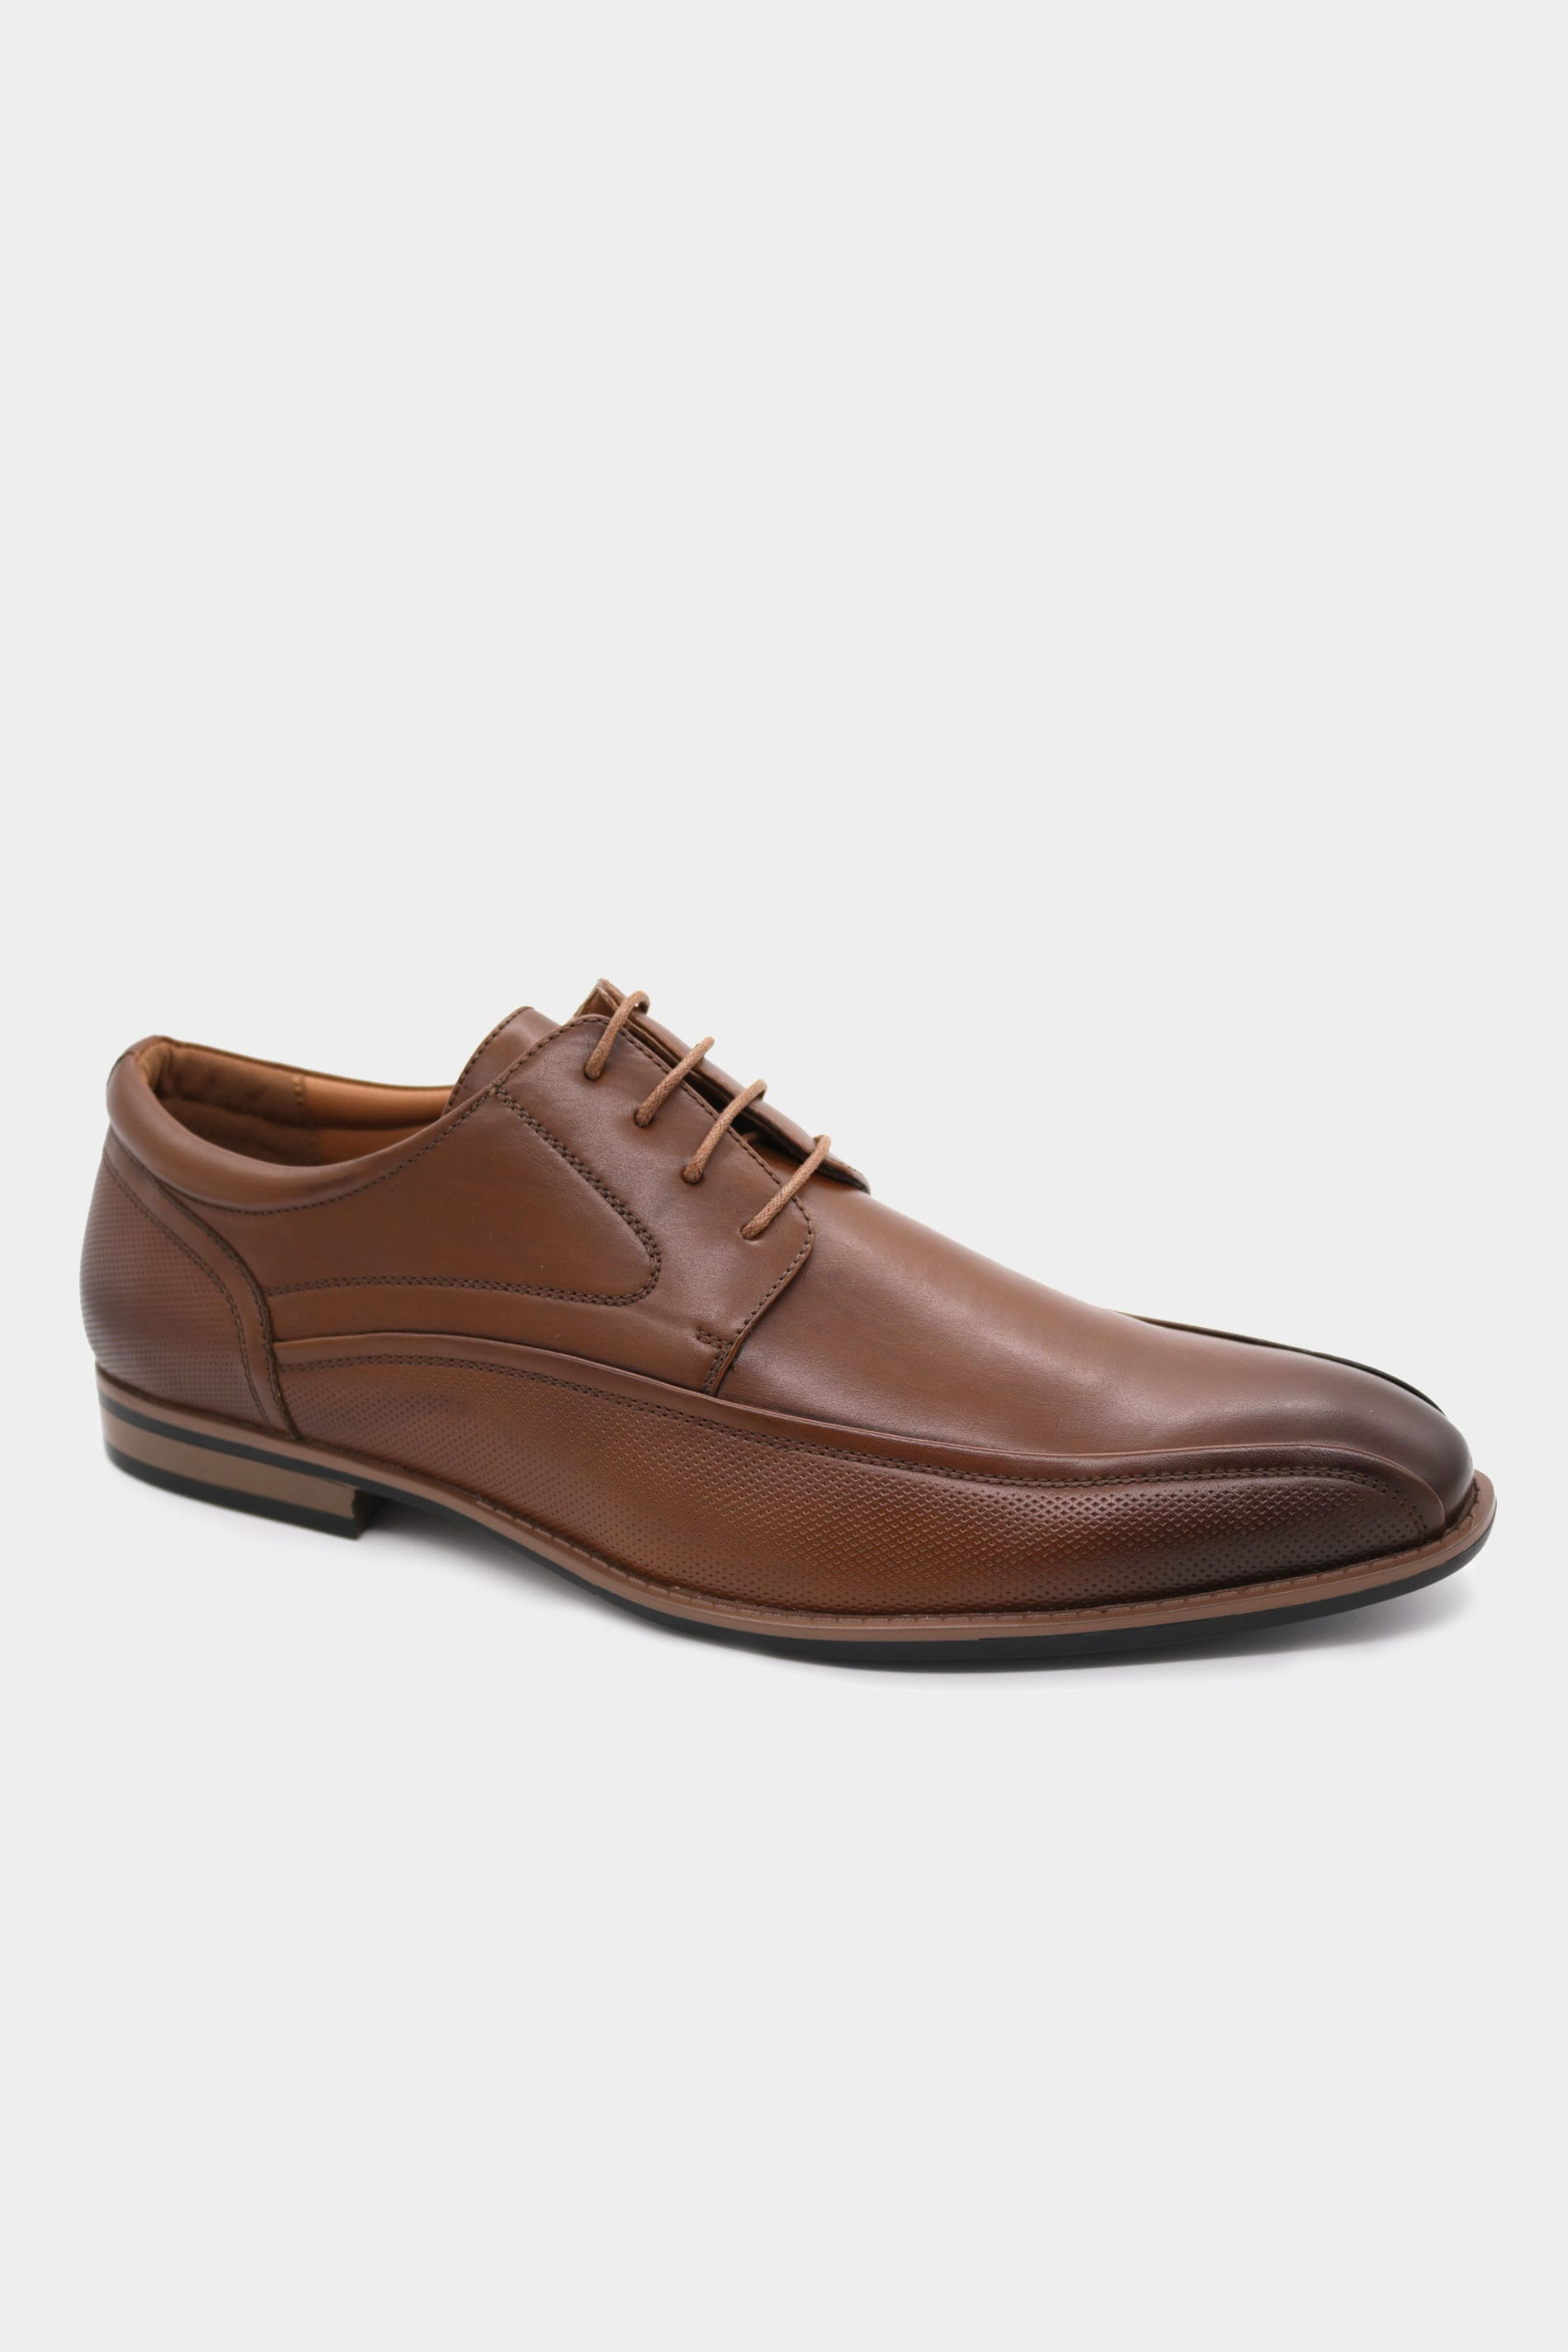 D555 Brown Formal Derby Shoe